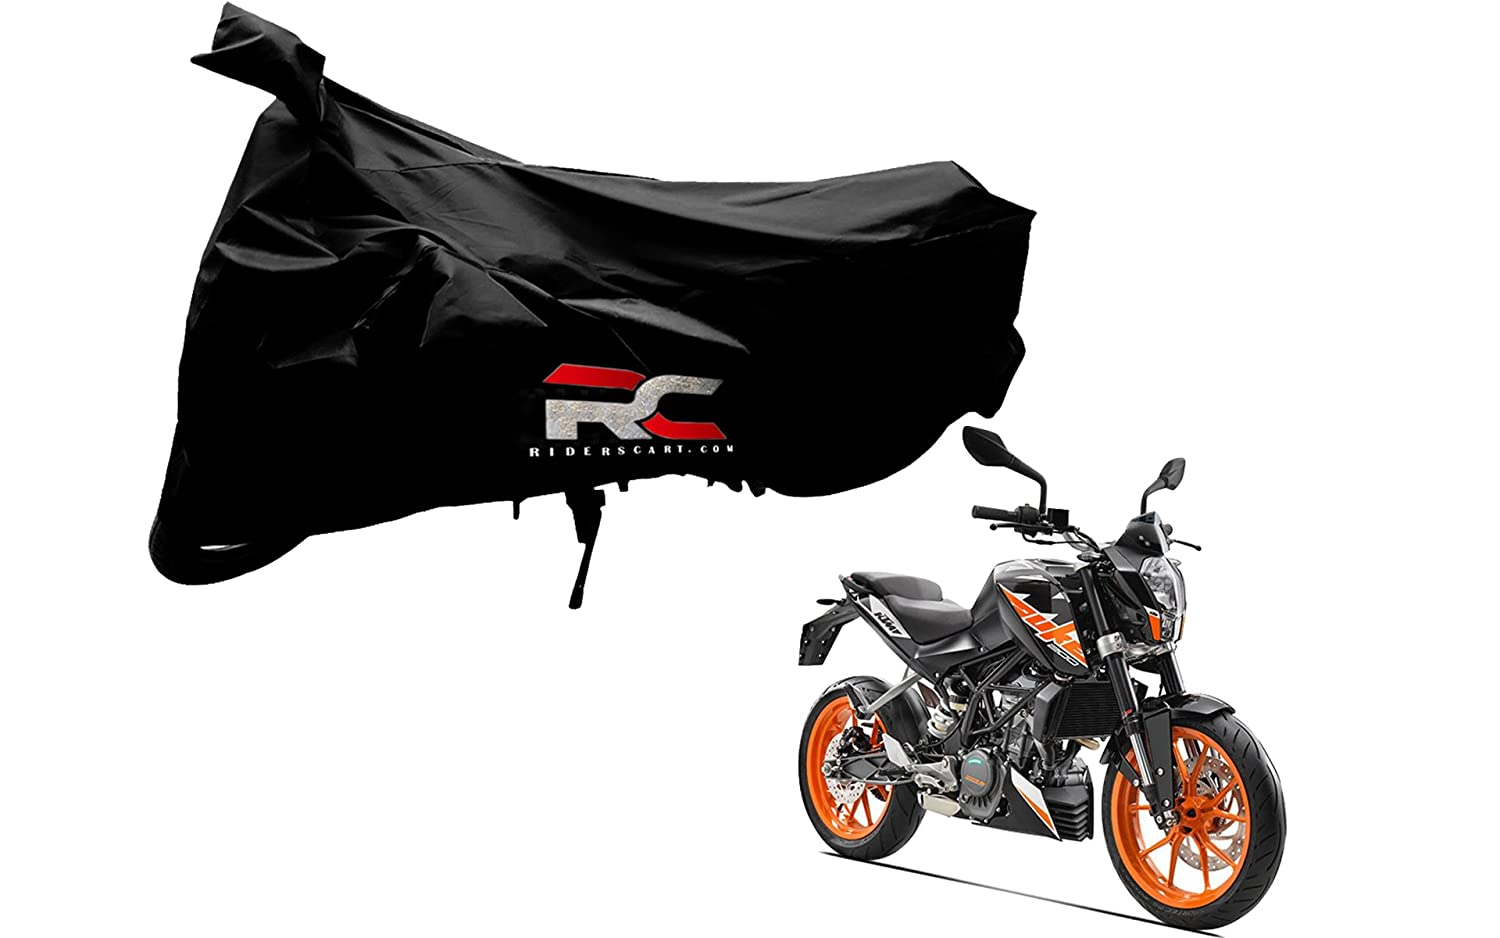 Riderscart bike for ktm duke 200 bicycle anti uv protection with anti theft lock holes and buckles includes bag black color amazon in car motorbike